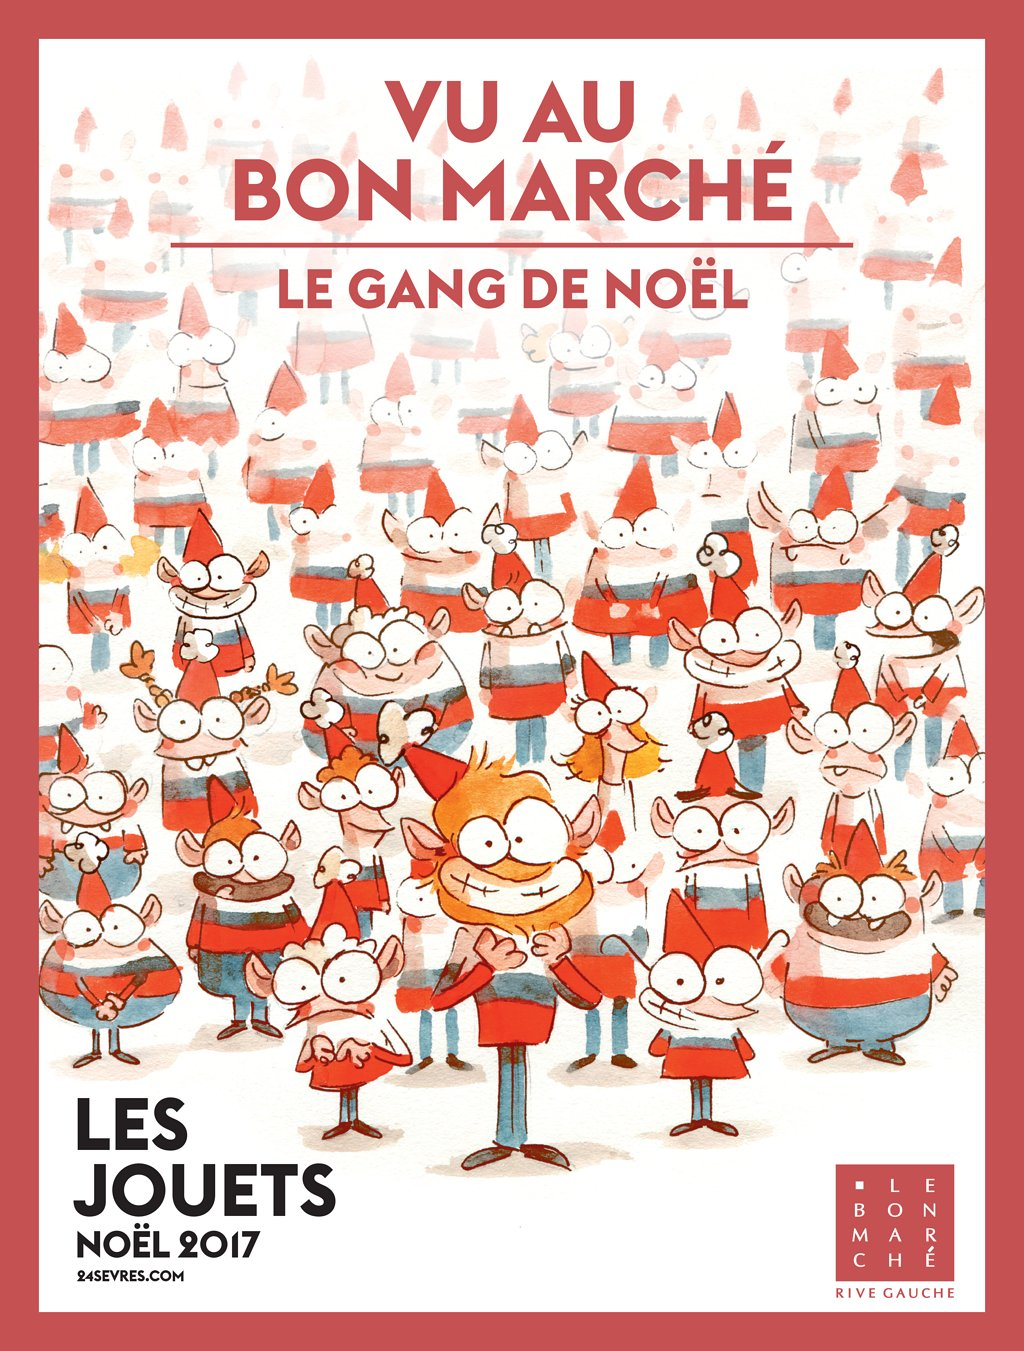 Le Bon Coin Jouets Catalogue Le Bon Marché Rive Gauche France Noël 2017 Catalogue